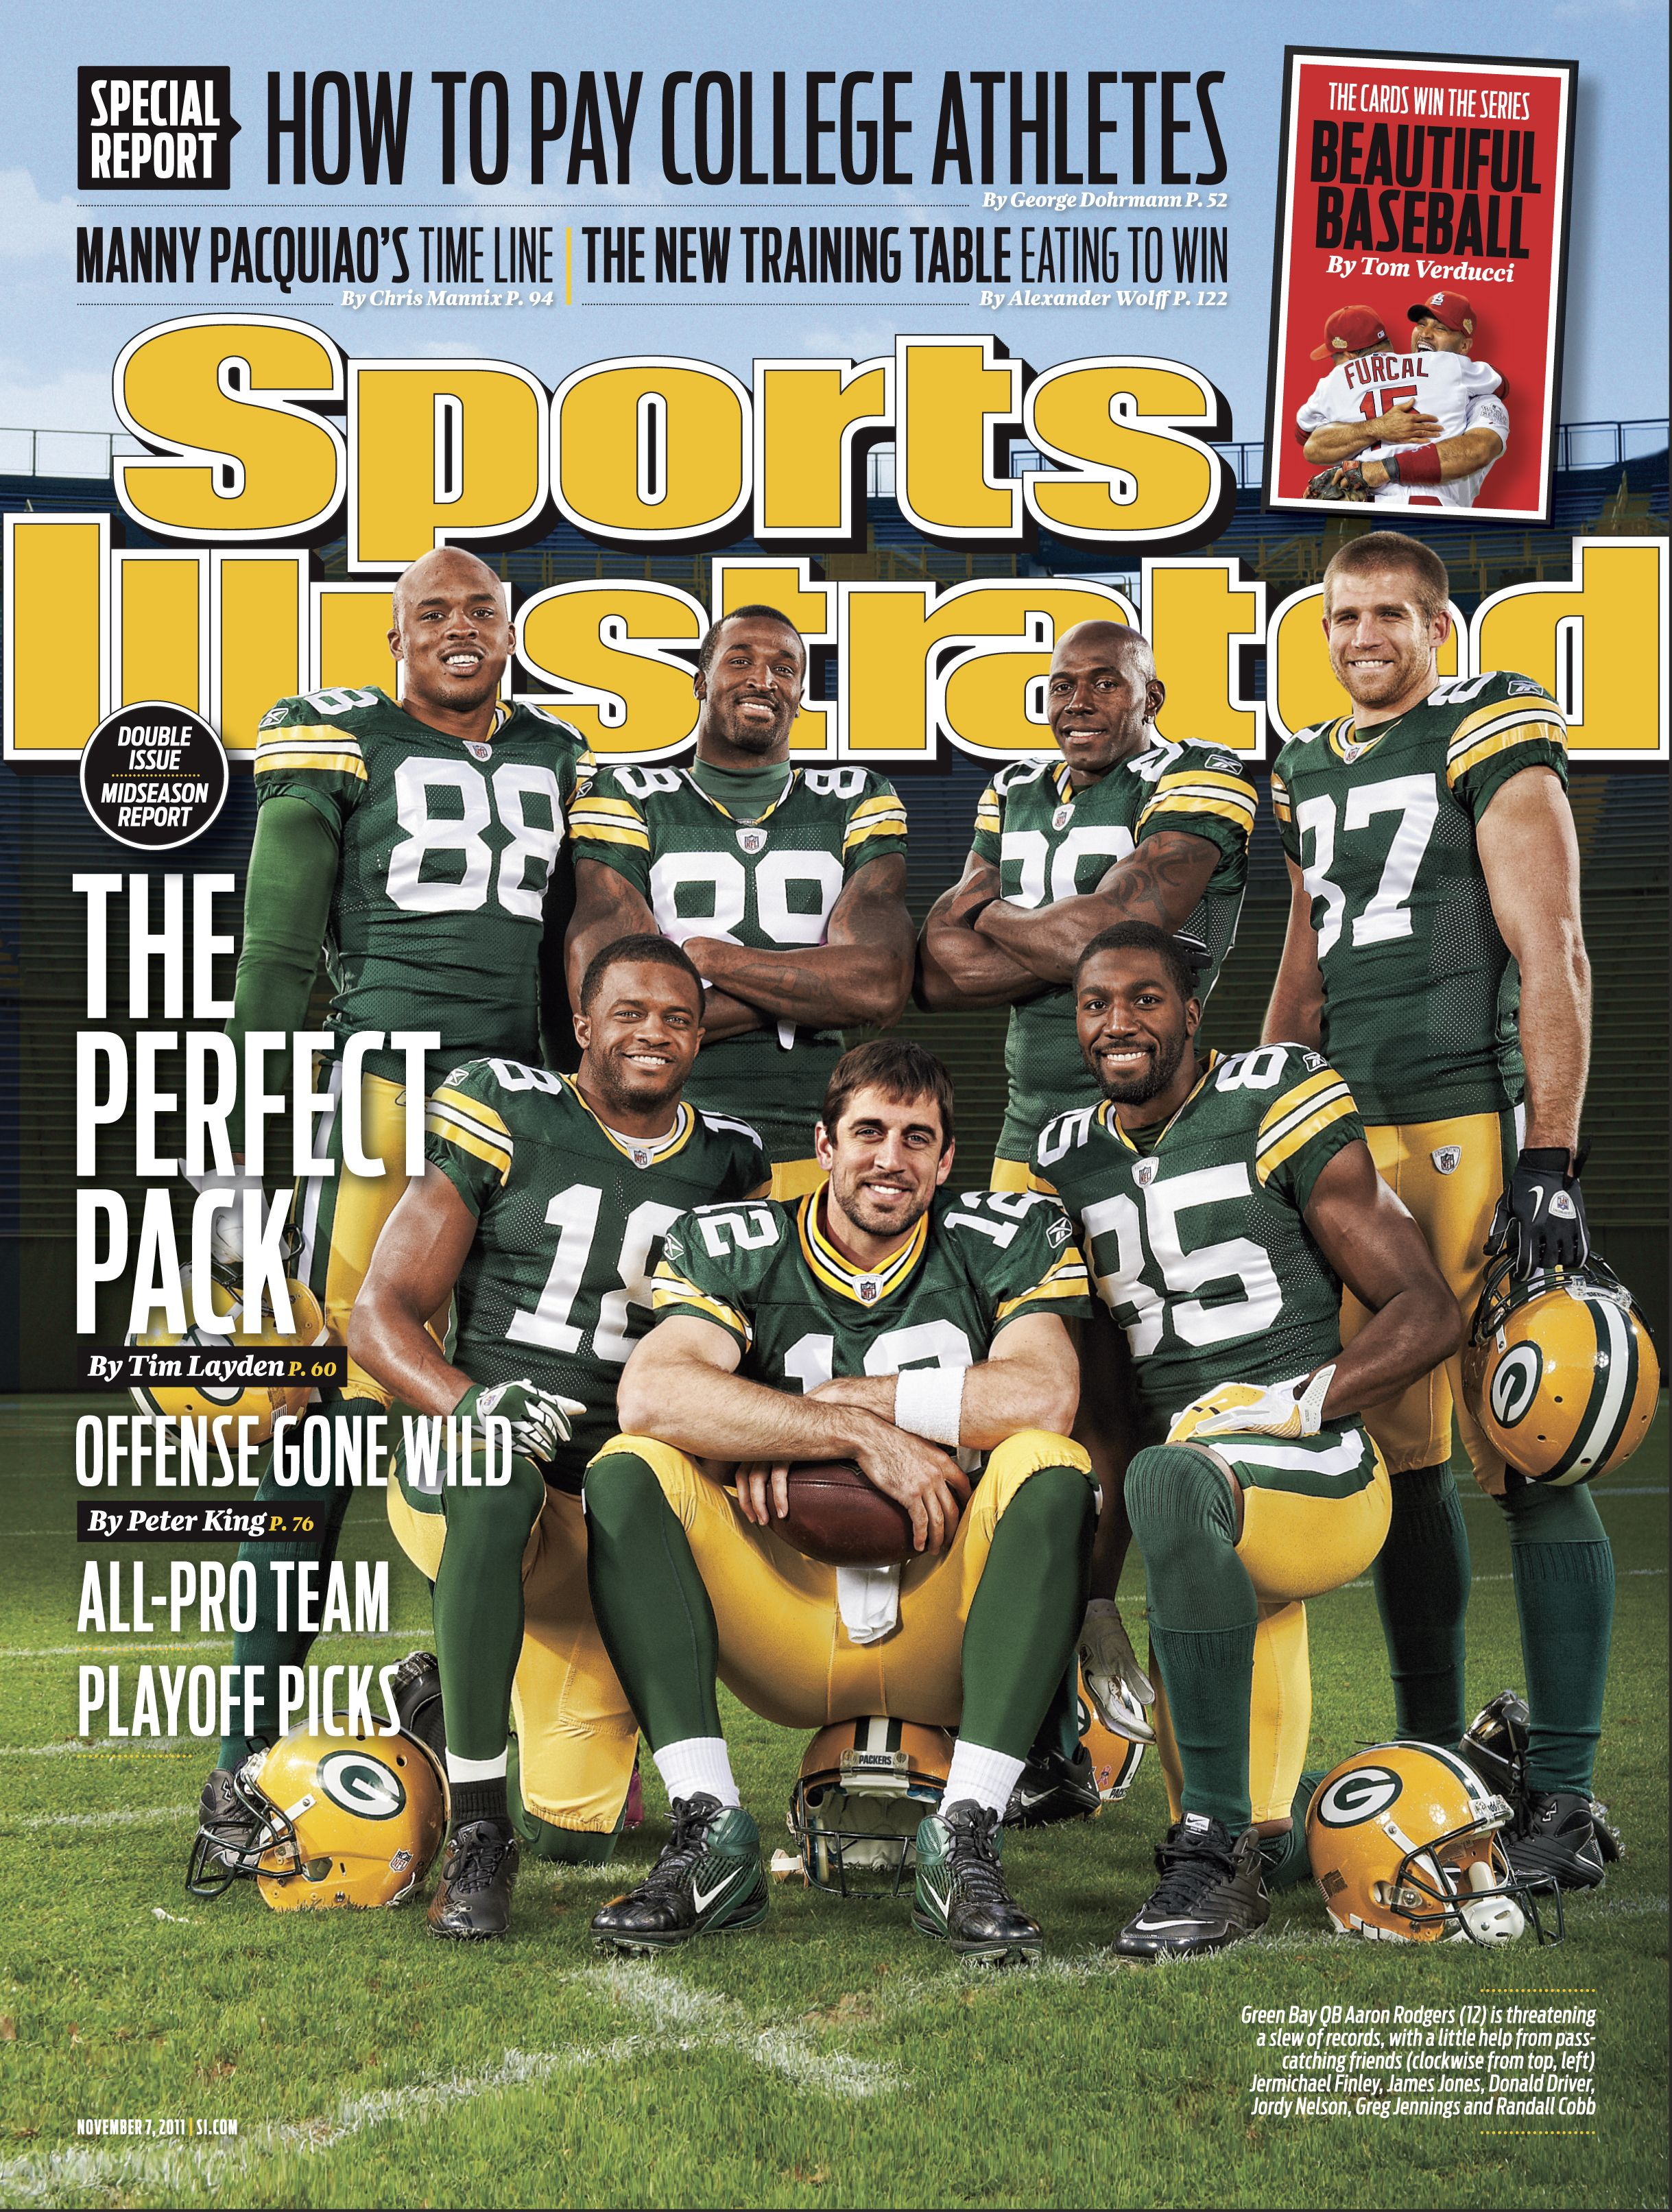 The Packers Si Cover Green Bay Green Bay Packers Signs Green Bay Packers Fans